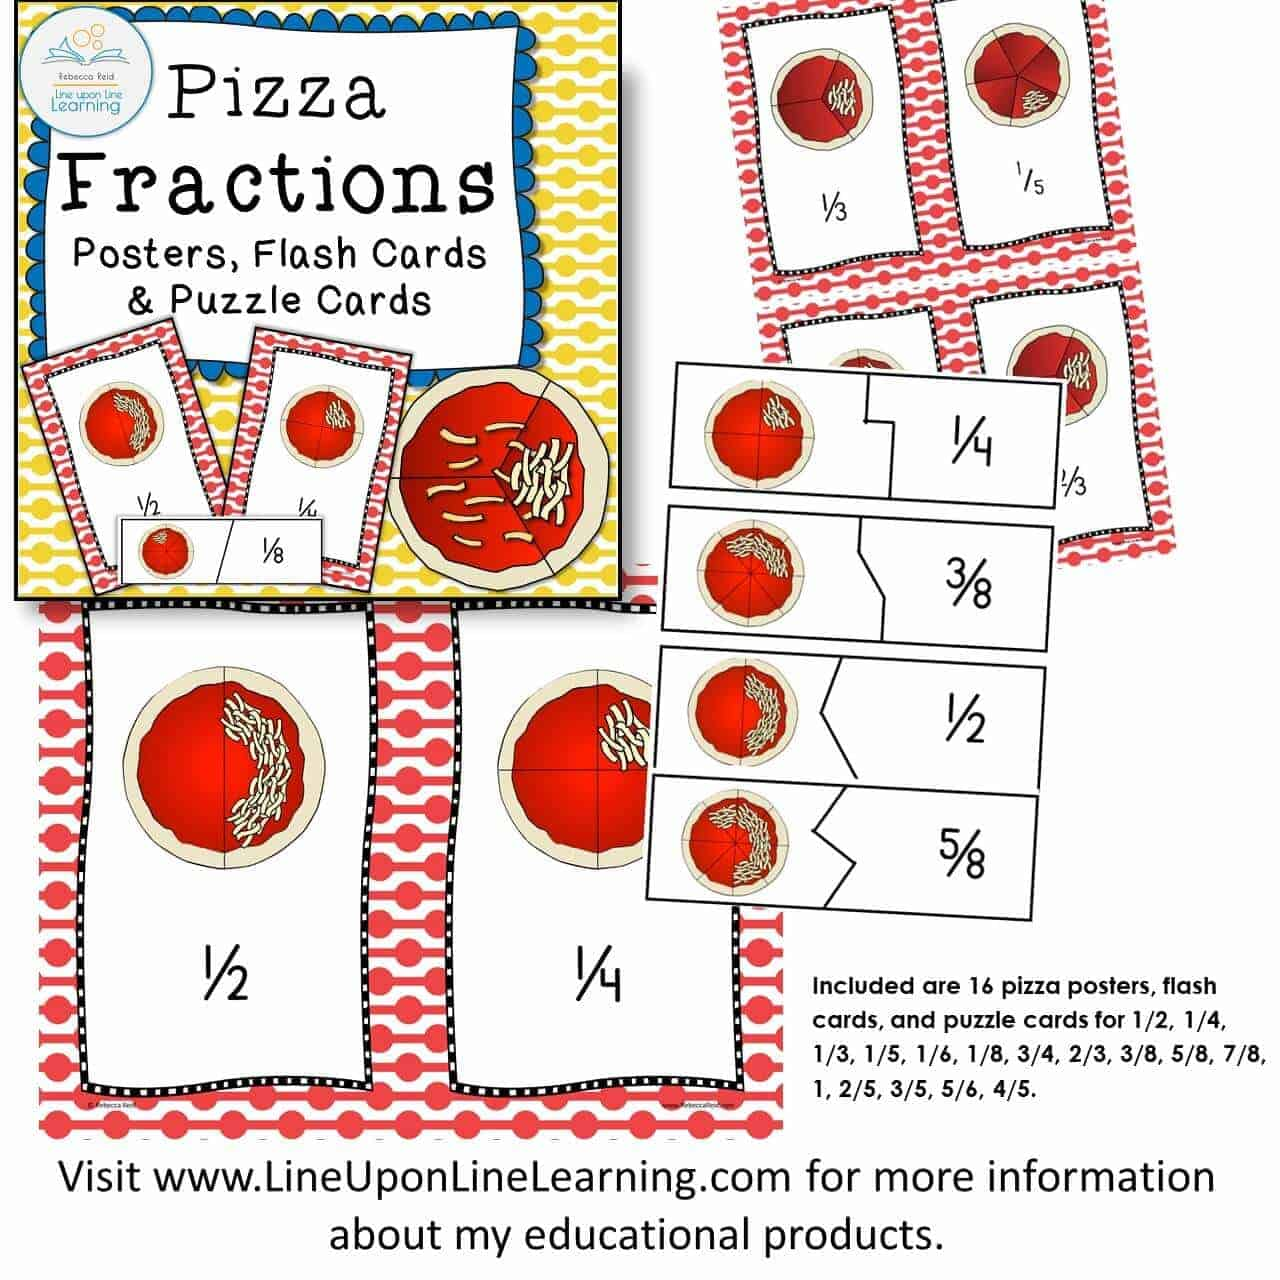 Fractions Posters Games And Worksheets Pizza Theme Bundle Line Upon Line Learning